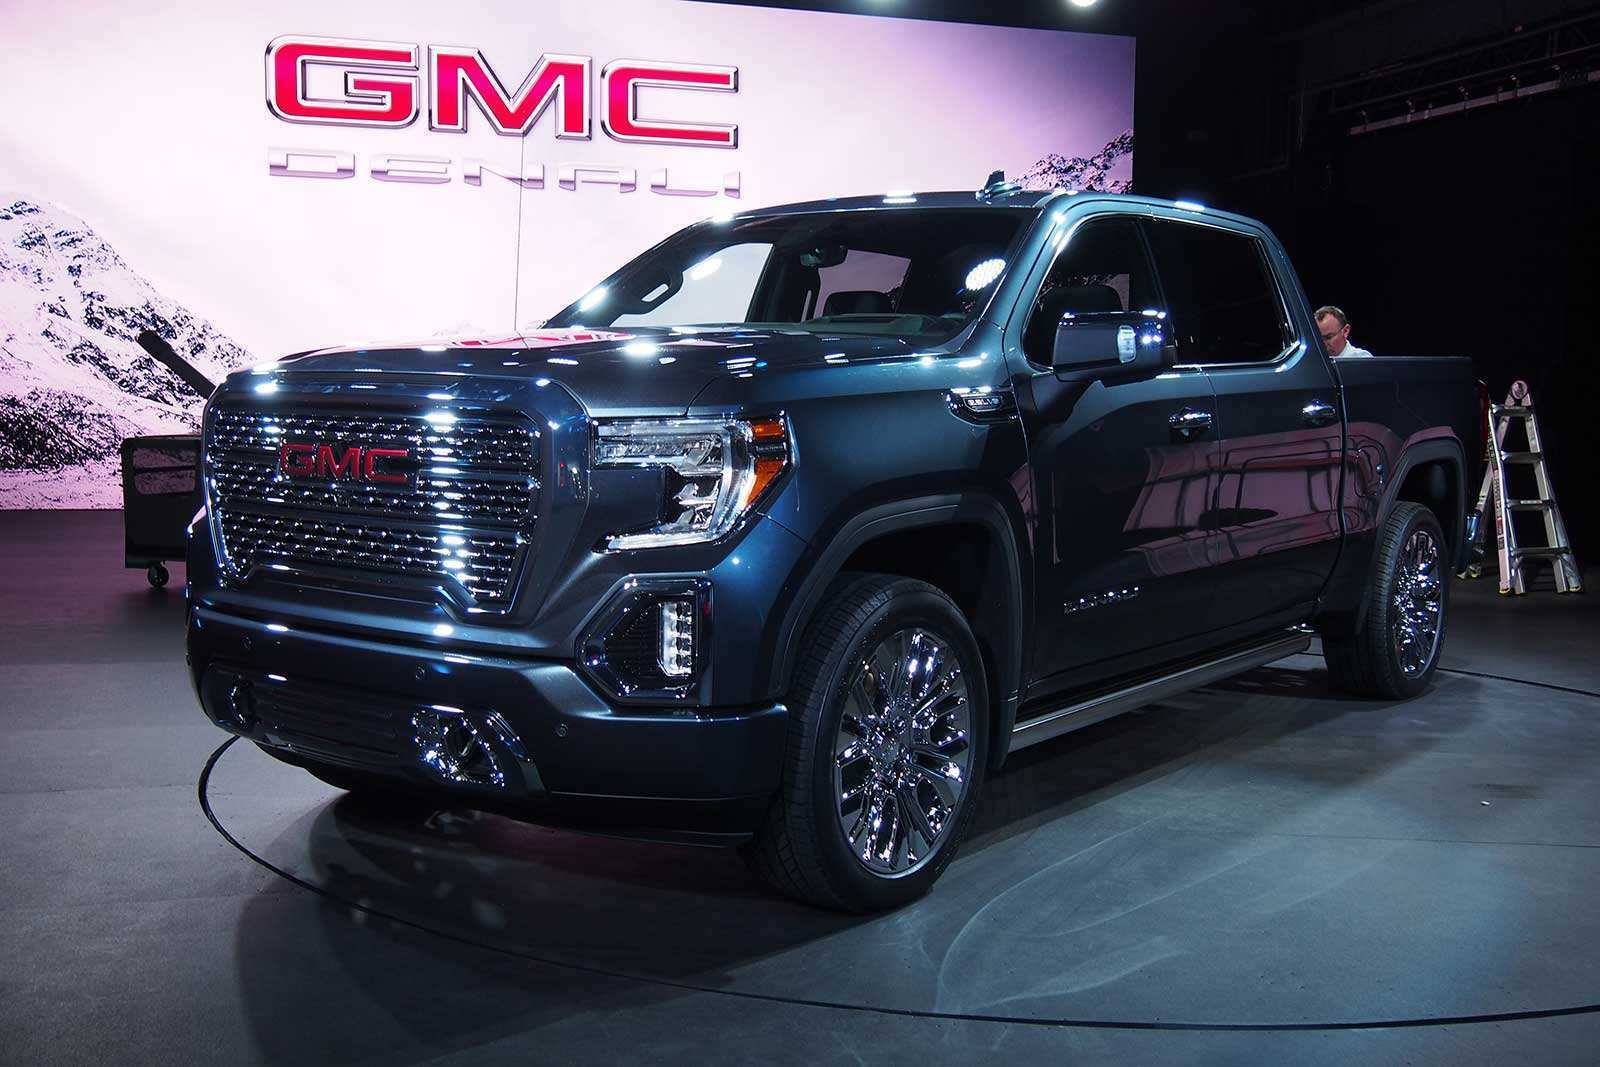 78 Great 2019 Gmc Pickup Tailgate Concept by 2019 Gmc Pickup Tailgate